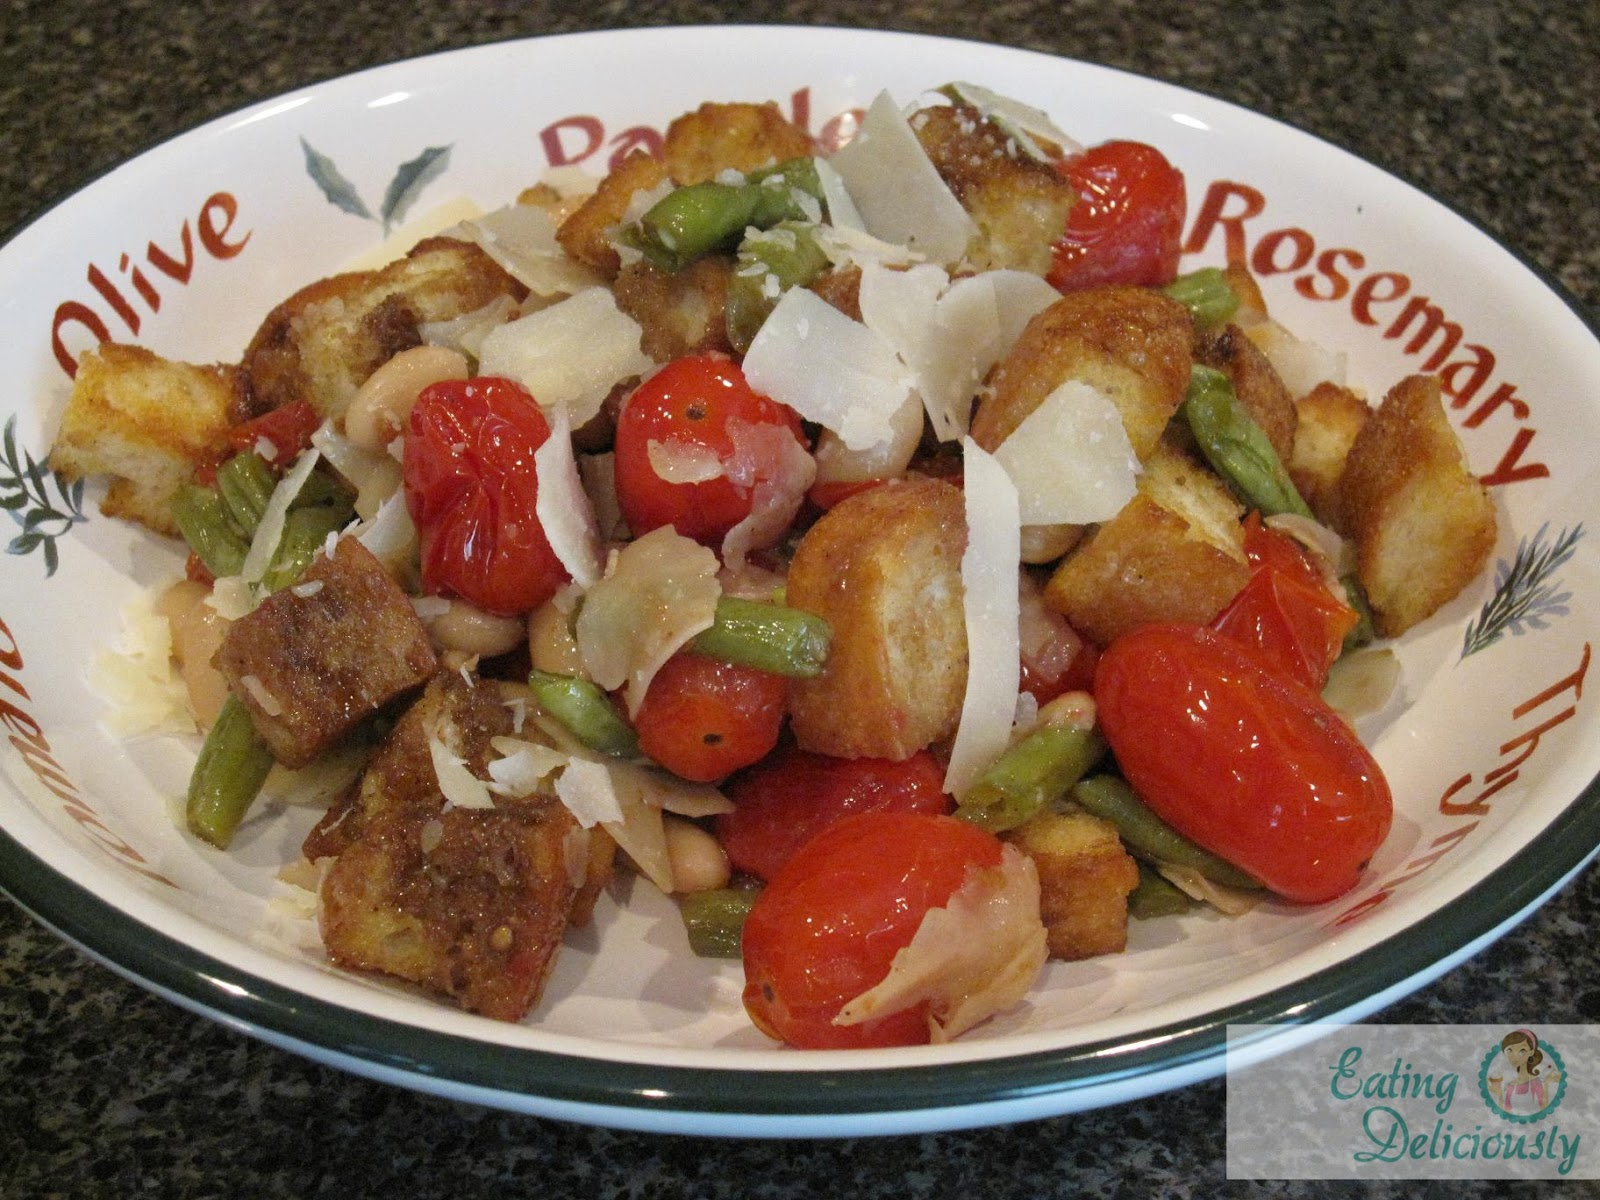 Eating Deliciously: Roasted Vegetable Panzanella